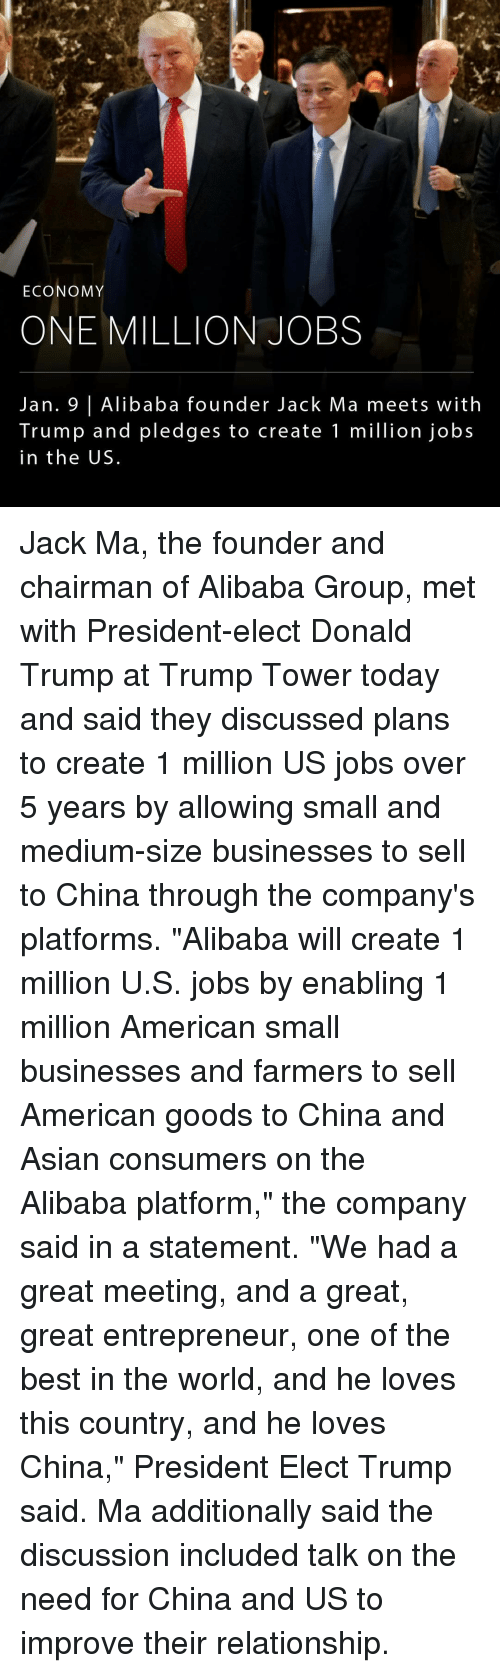 "enabler: ECONOMY  ONE MILLION JOBS  Jan. 9 Alibaba founder Jack Ma meets with  Trump and pledges to create 1 million jobs  in the US. Jack Ma, the founder and chairman of Alibaba Group, met with President-elect Donald Trump at Trump Tower today and said they discussed plans to create 1 million US jobs over 5 years by allowing small and medium-size businesses to sell to China through the company's platforms. ""Alibaba will create 1 million U.S. jobs by enabling 1 million American small businesses and farmers to sell American goods to China and Asian consumers on the Alibaba platform,"" the company said in a statement. ""We had a great meeting, and a great, great entrepreneur, one of the best in the world, and he loves this country, and he loves China,"" President Elect Trump said. Ma additionally said the discussion included talk on the need for China and US to improve their relationship."